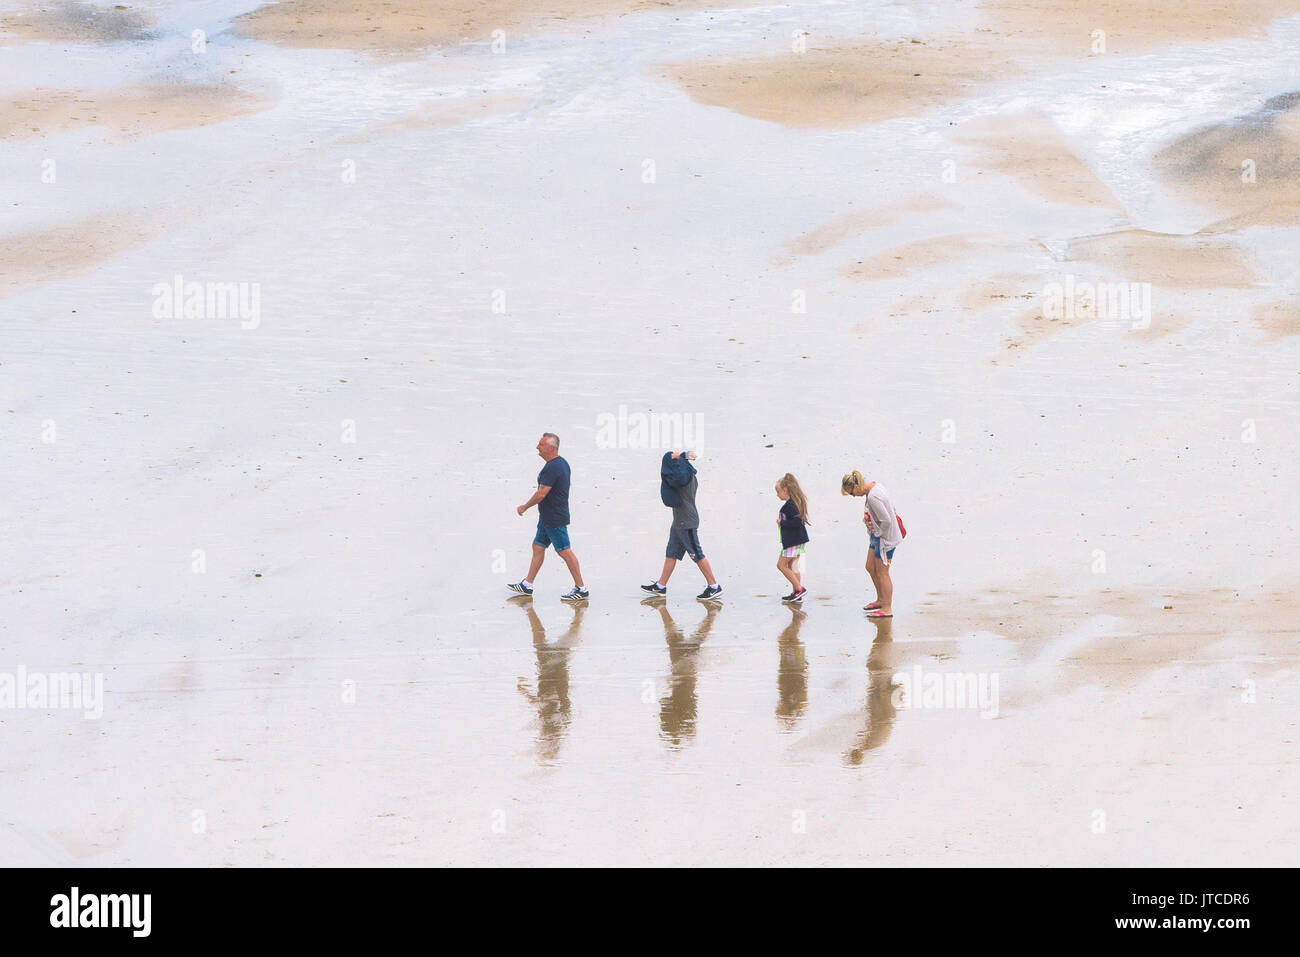 A family of holidaymakers walking in single file on a beach in Newquay, Cornwall. - Stock Image